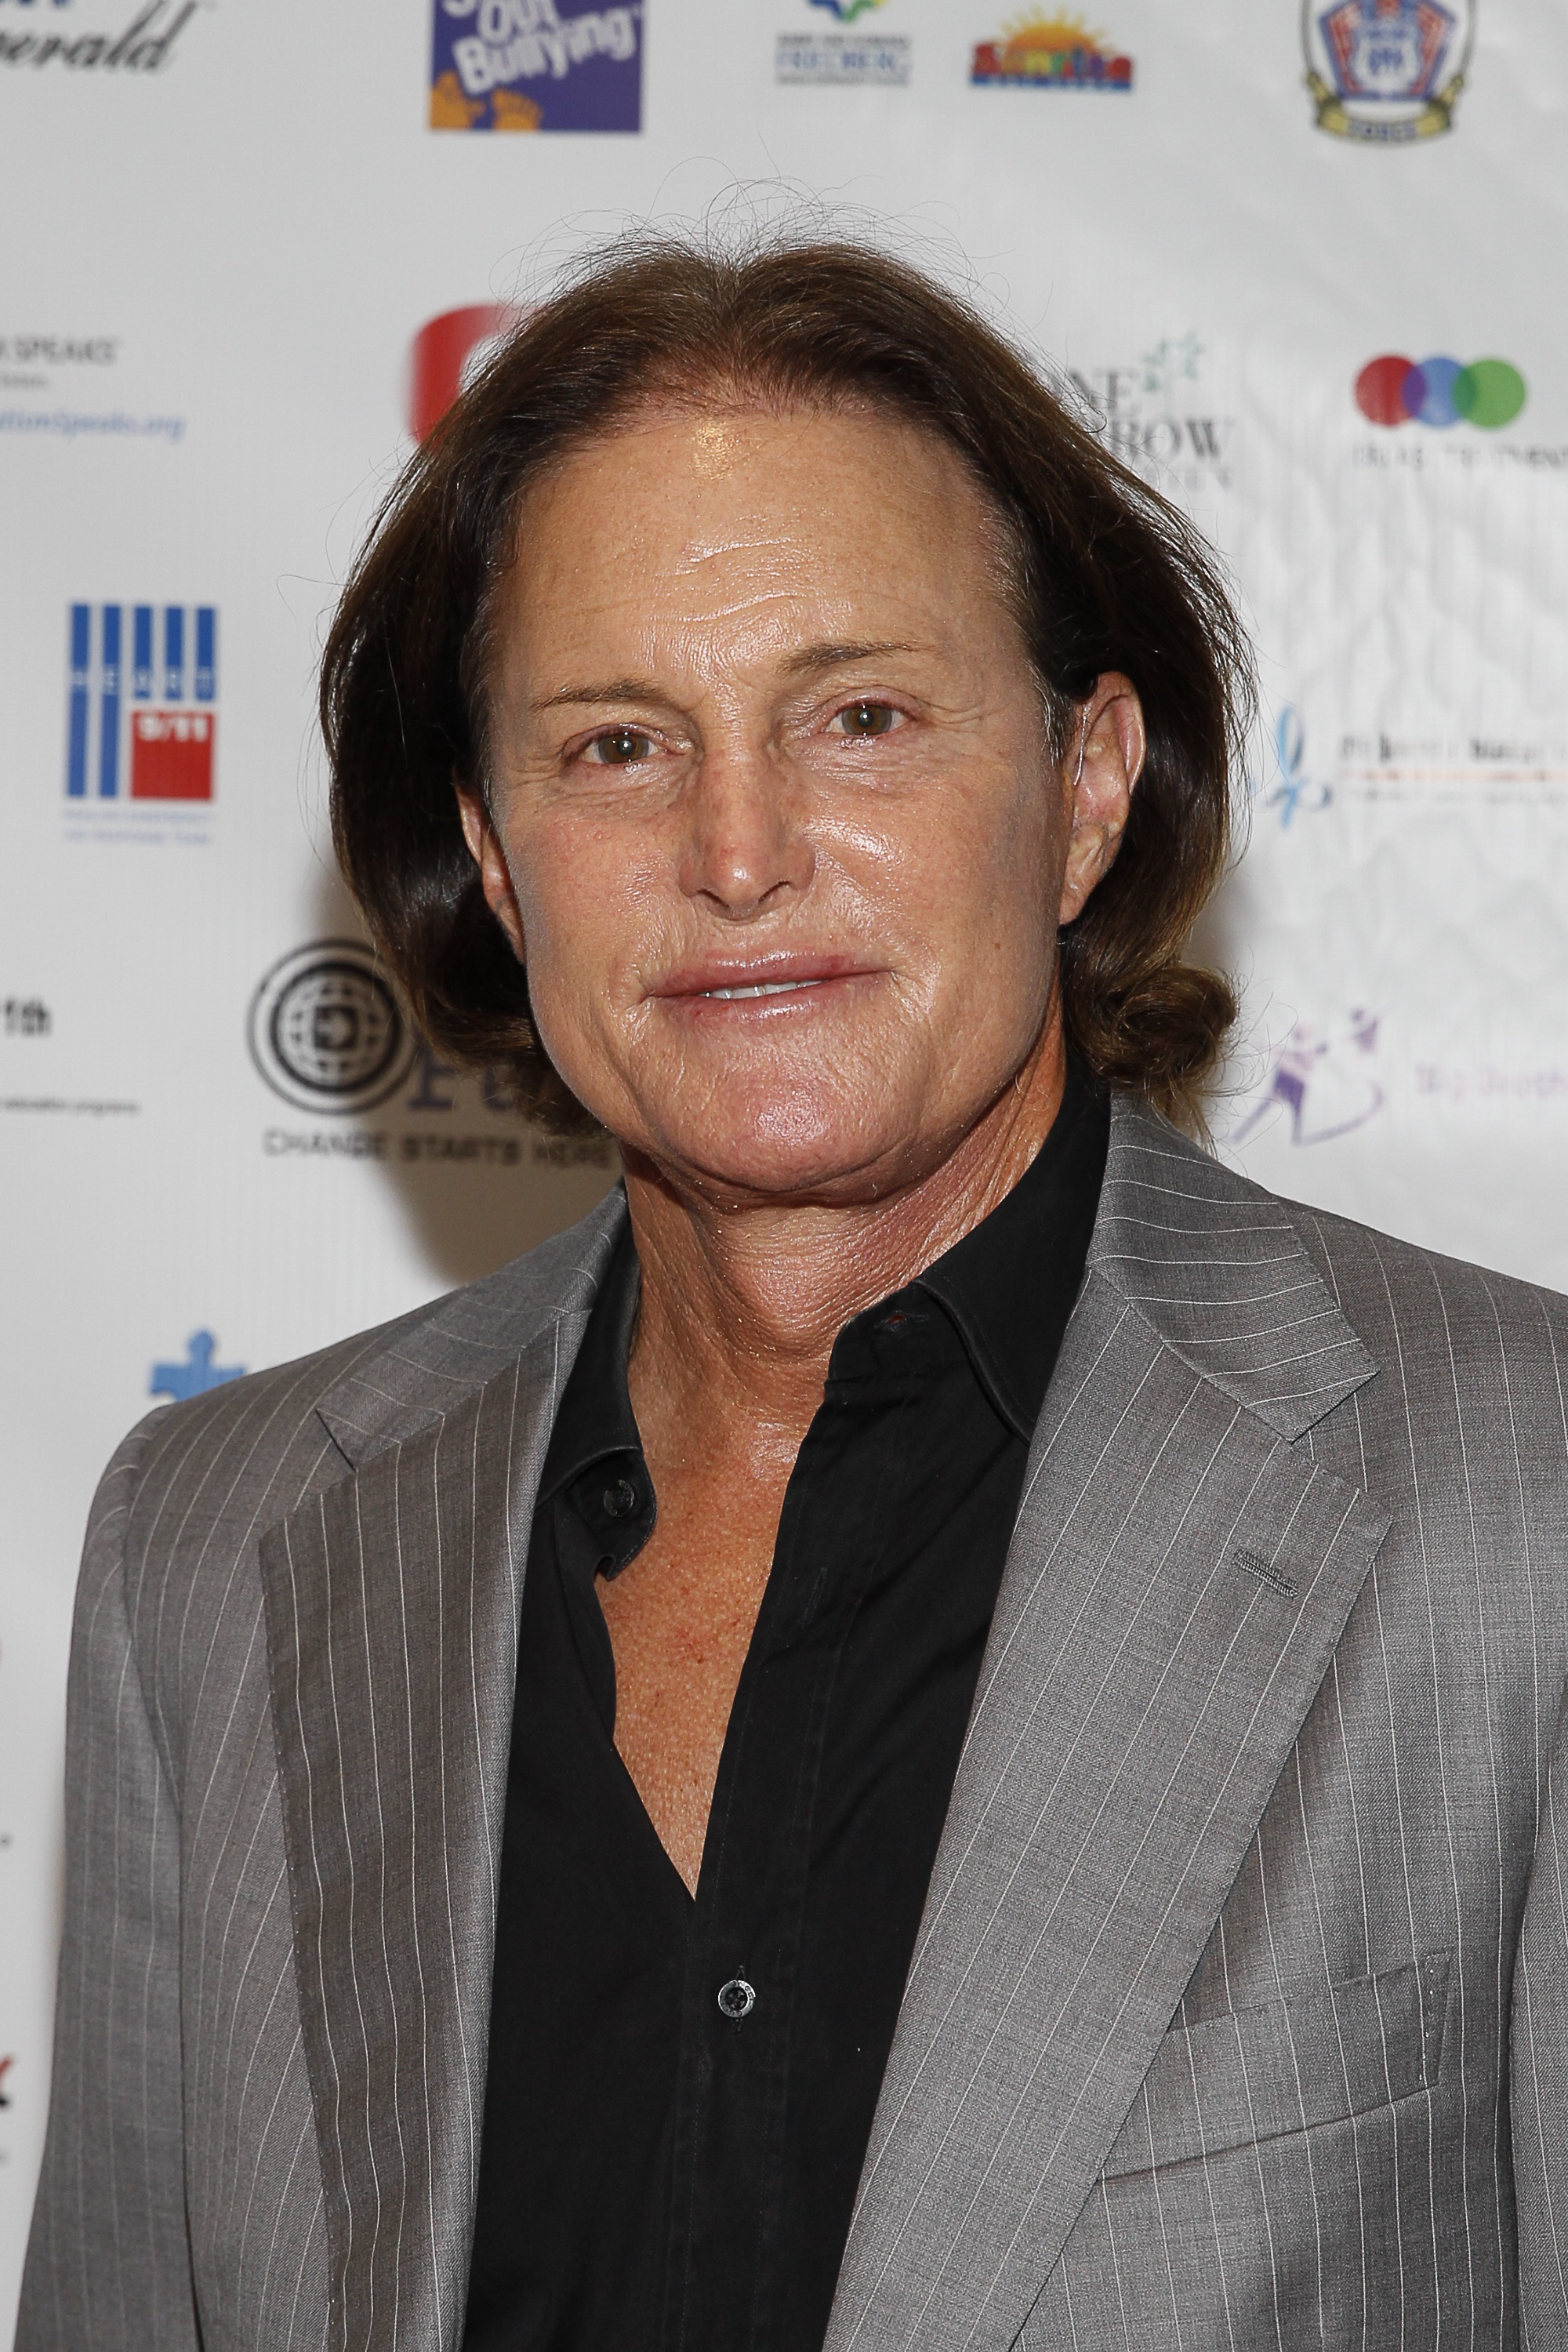 Bruce Jenner Gender Transition 138.25 Kb